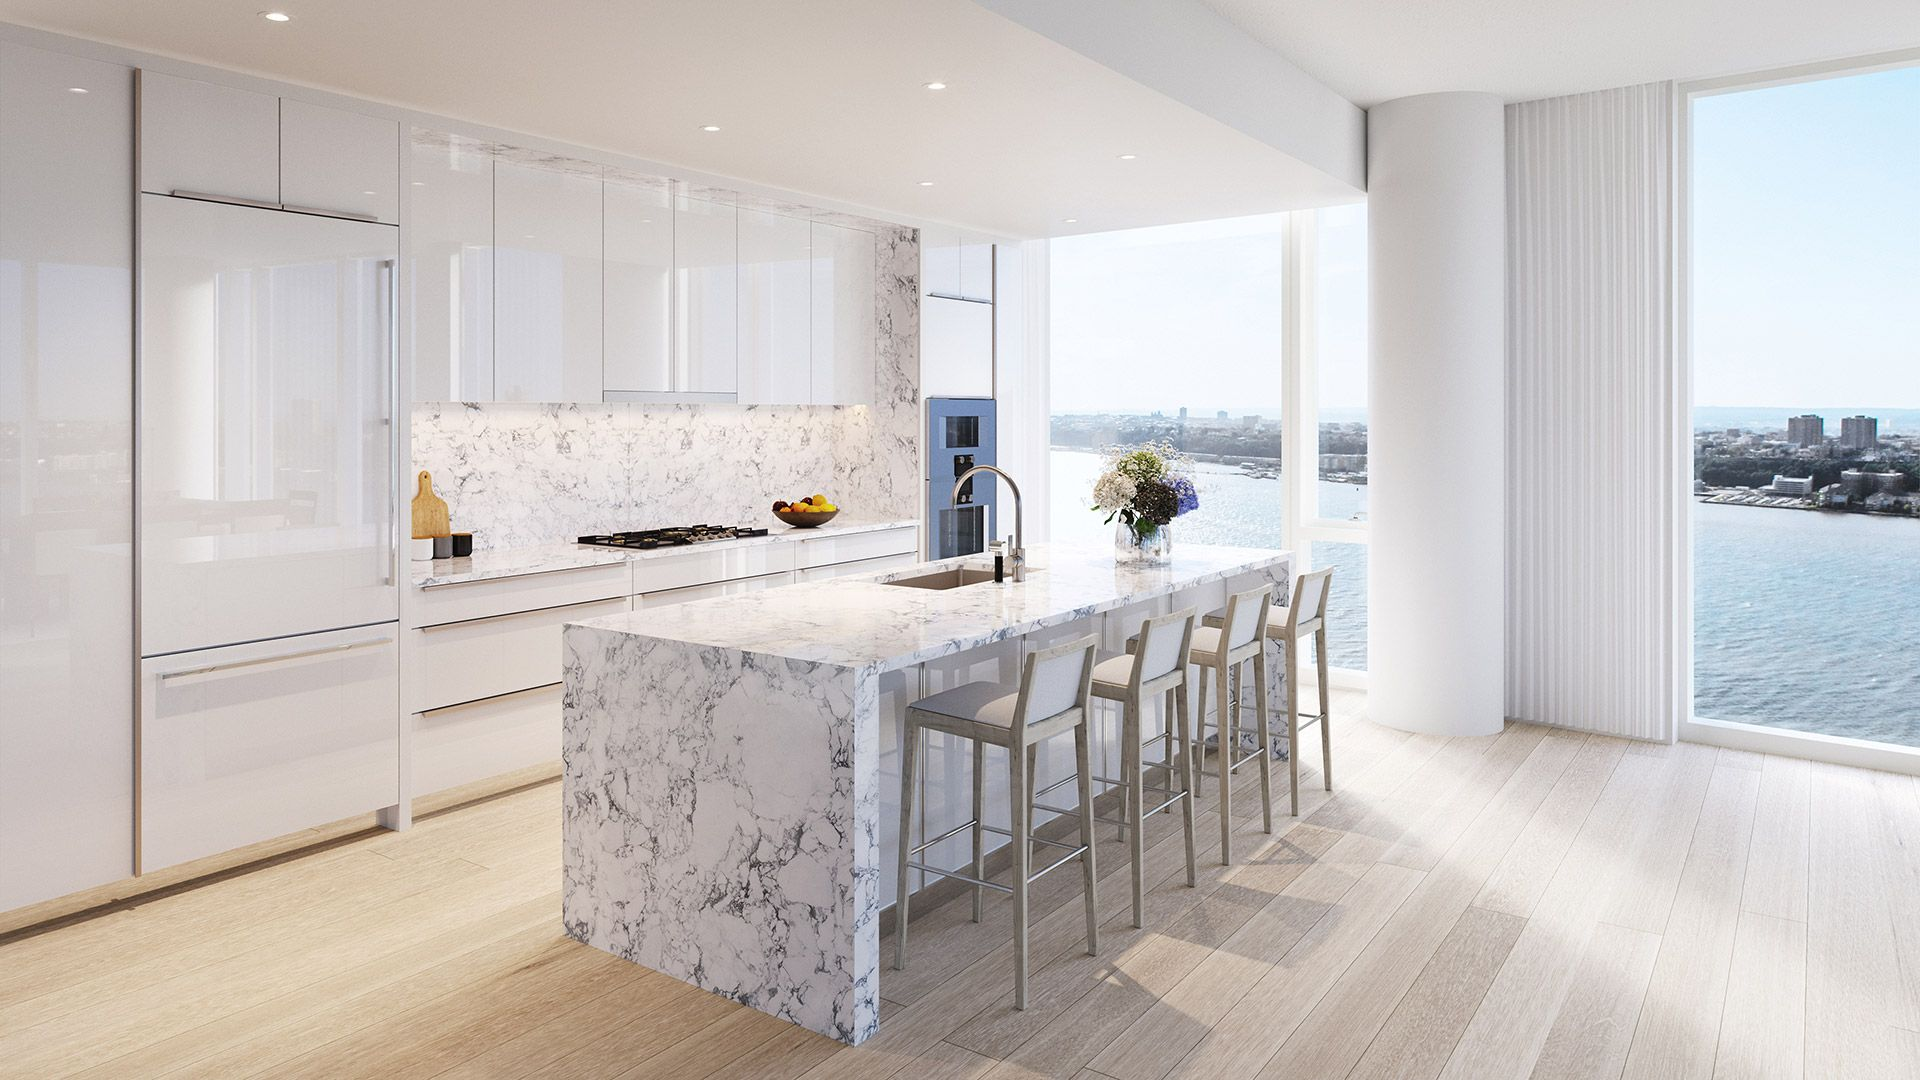 Tabourets Waterline Luxury Condominiums For Sale In Nyc Waterline Square Foxboro